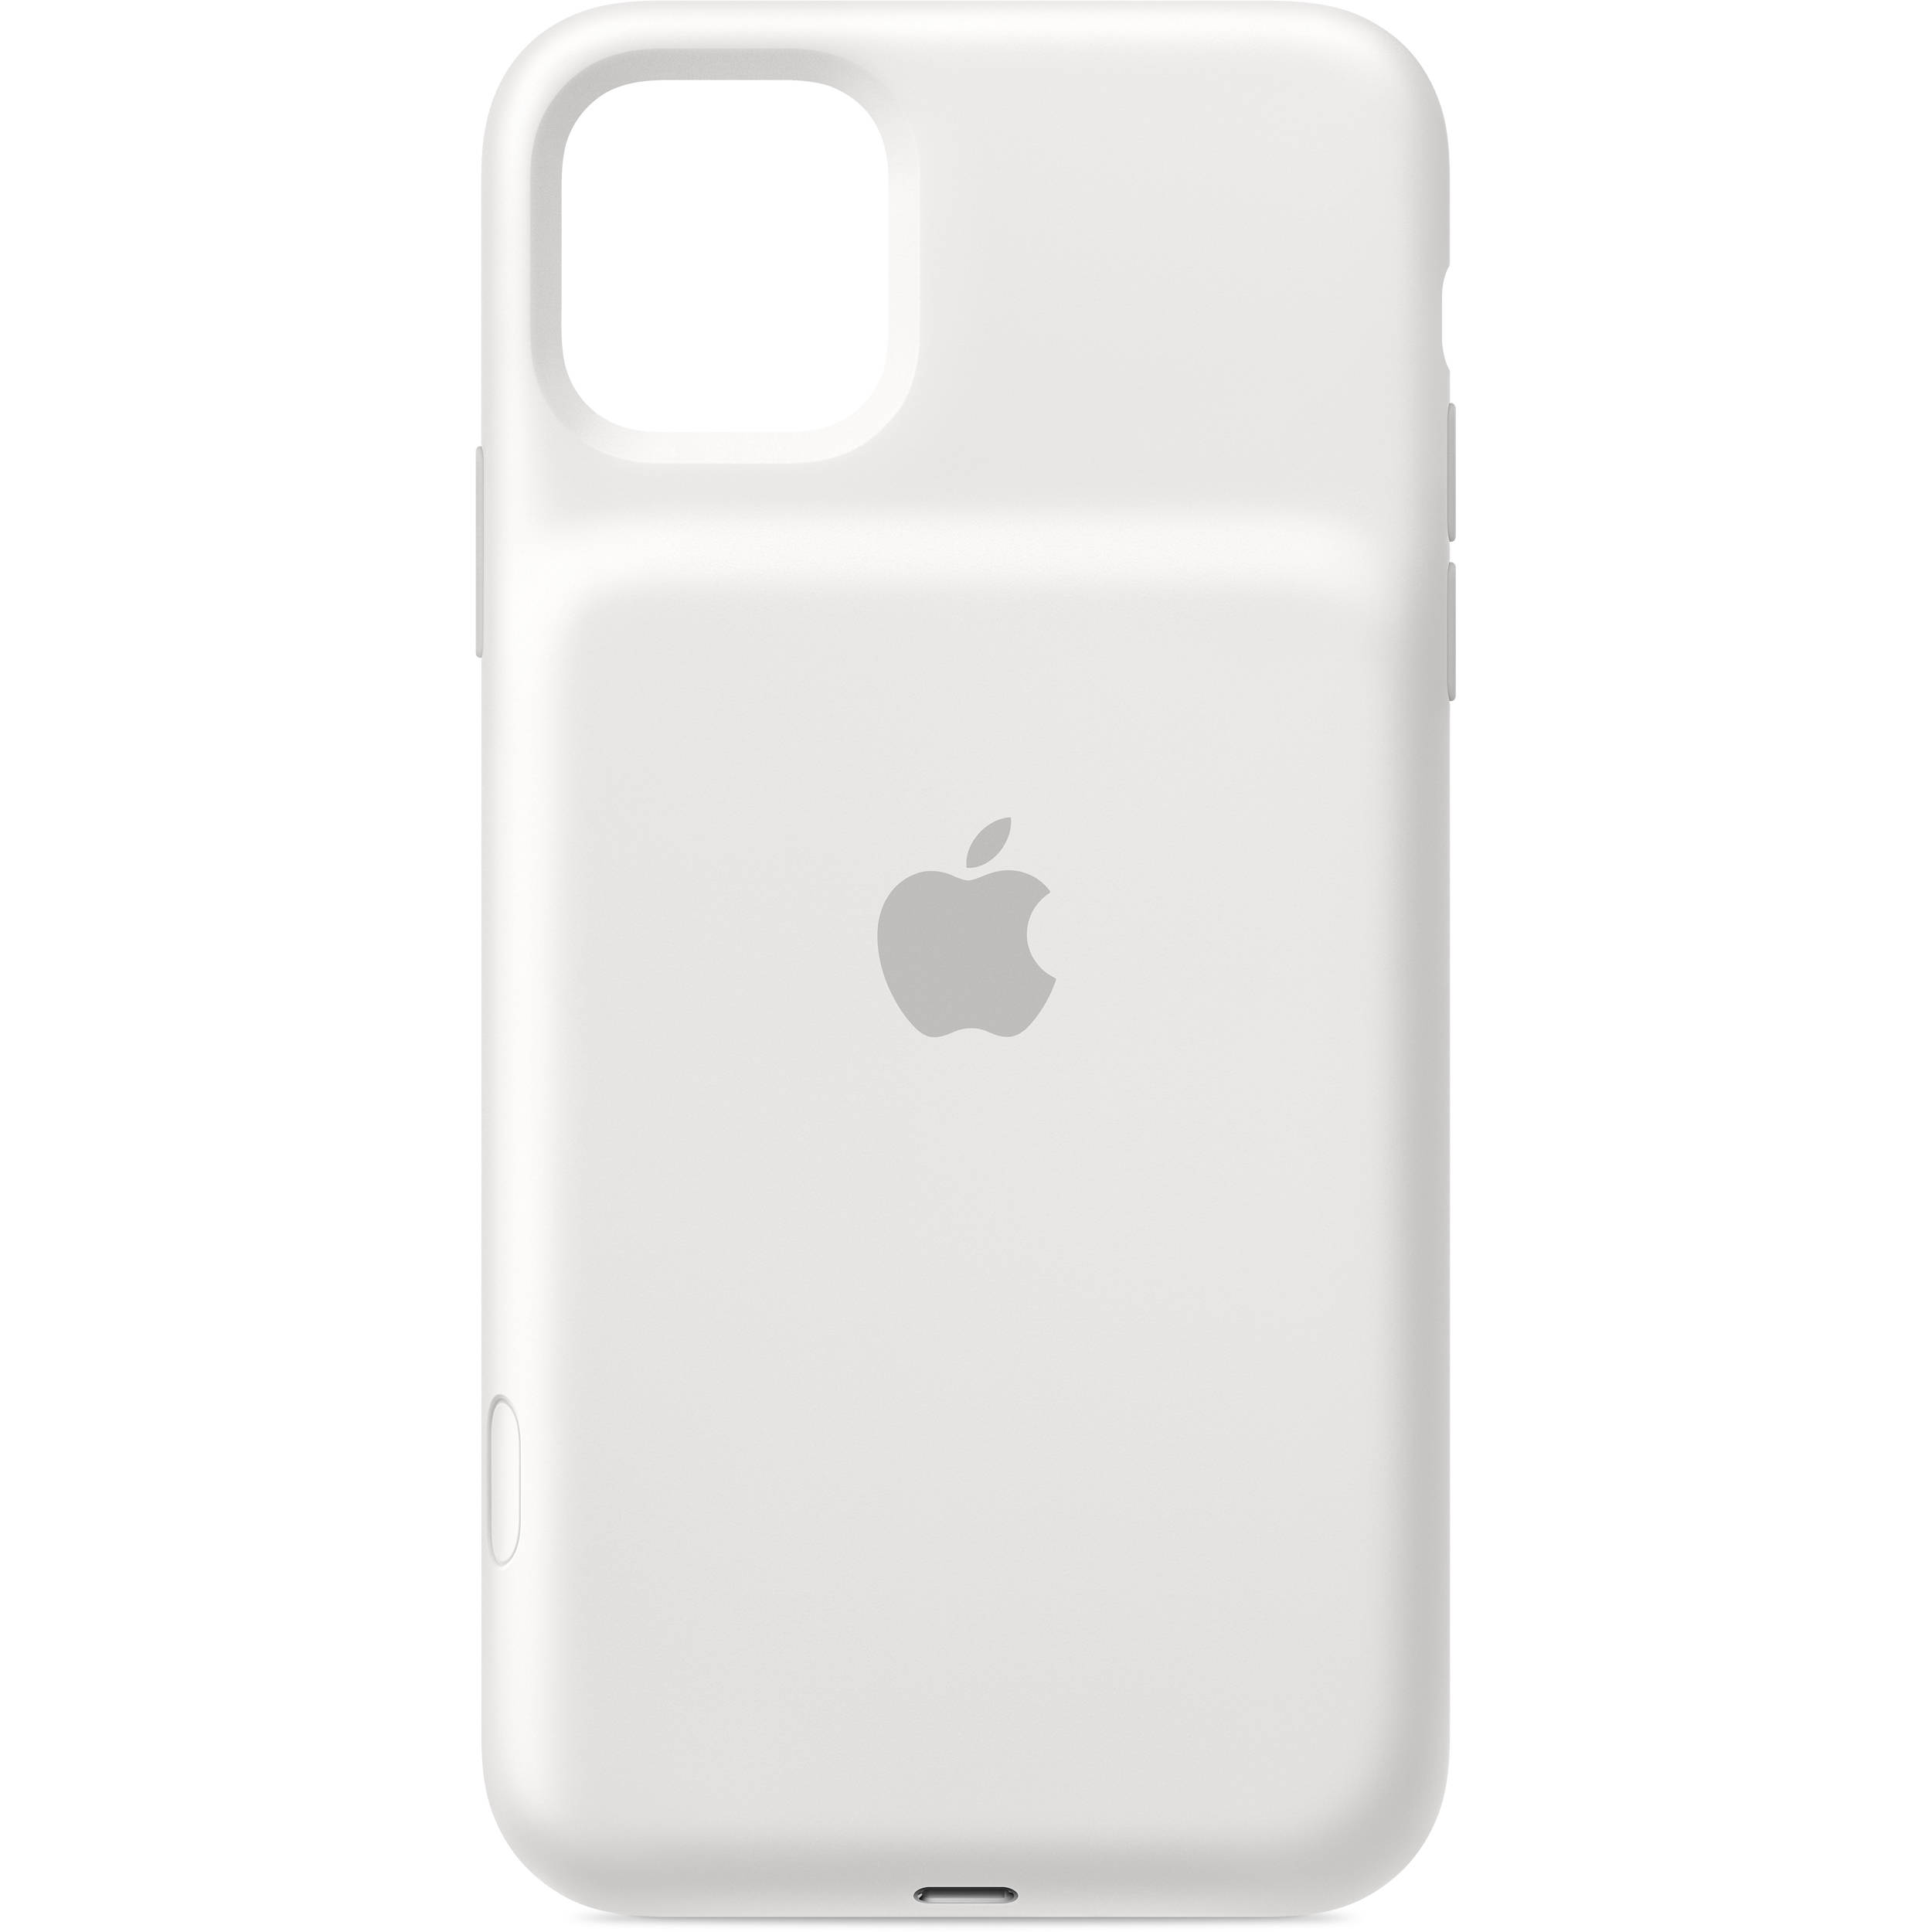 Apple Smart Battery Case with Wireless Charging MWVQ2LL/A B&H